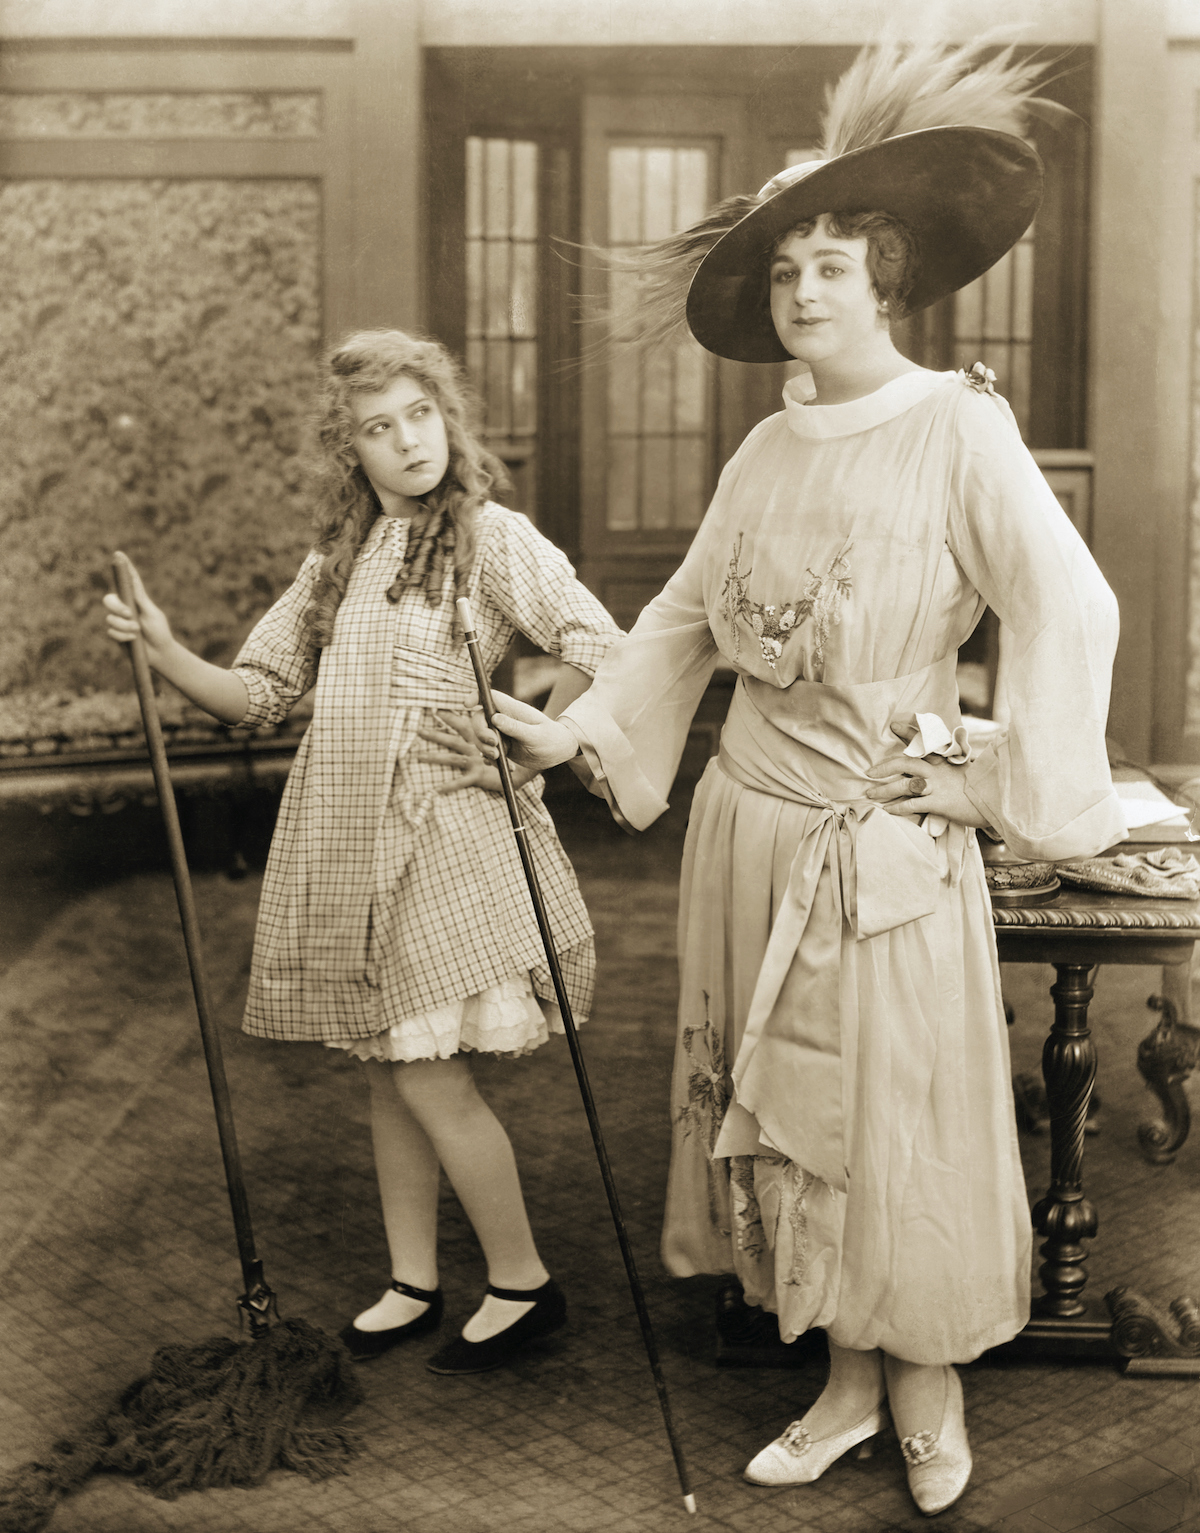 Actress Mary Pickford and Drag Performer Julian Eltinge. Photo: Actress Mary Pickford and Drag Performer Julian Eltinge via Getty Images